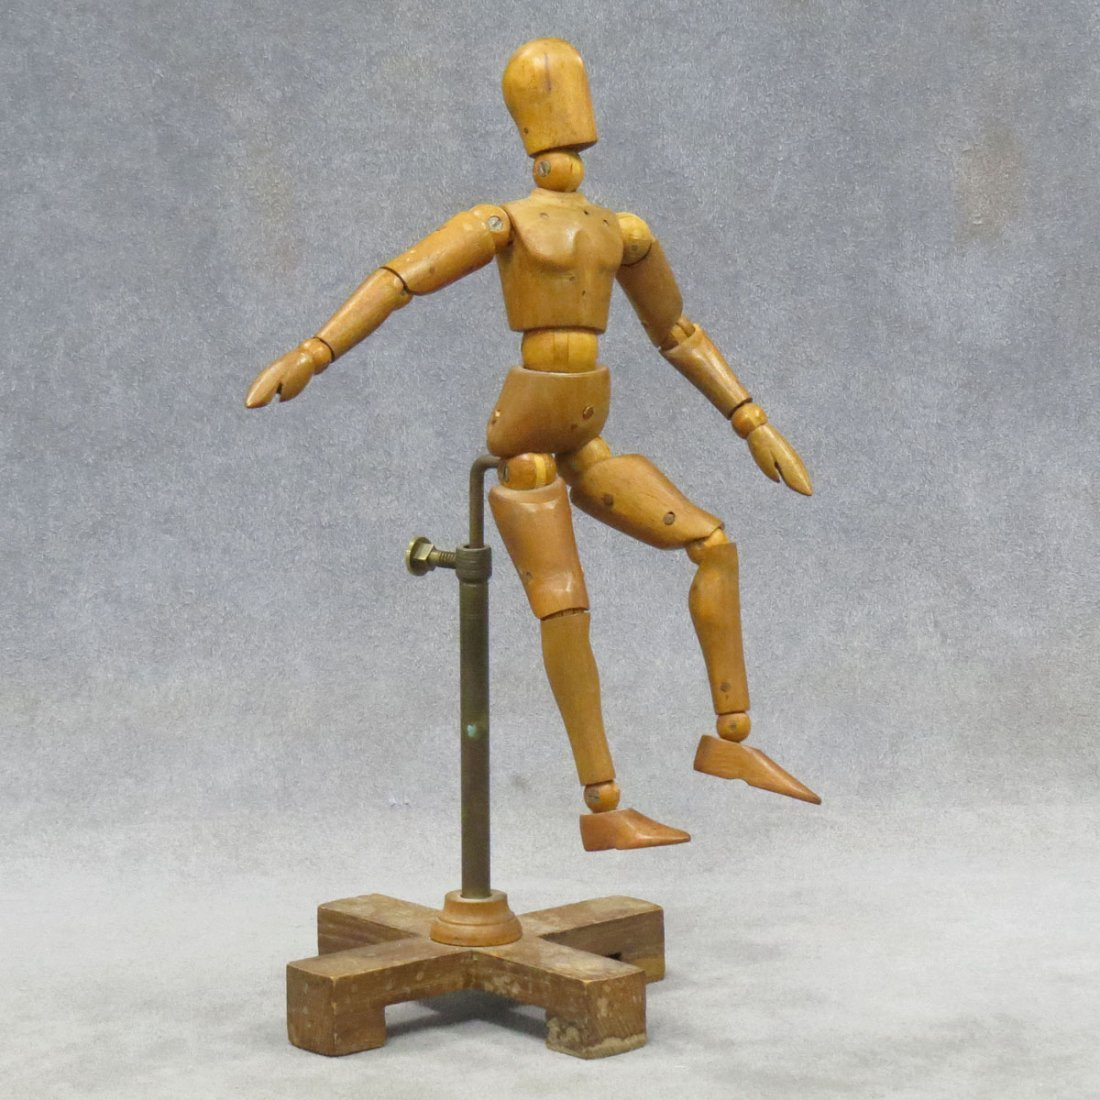 VINTAGE ARTICULATED ARTIST'S WOOD MODEL WITH STAND